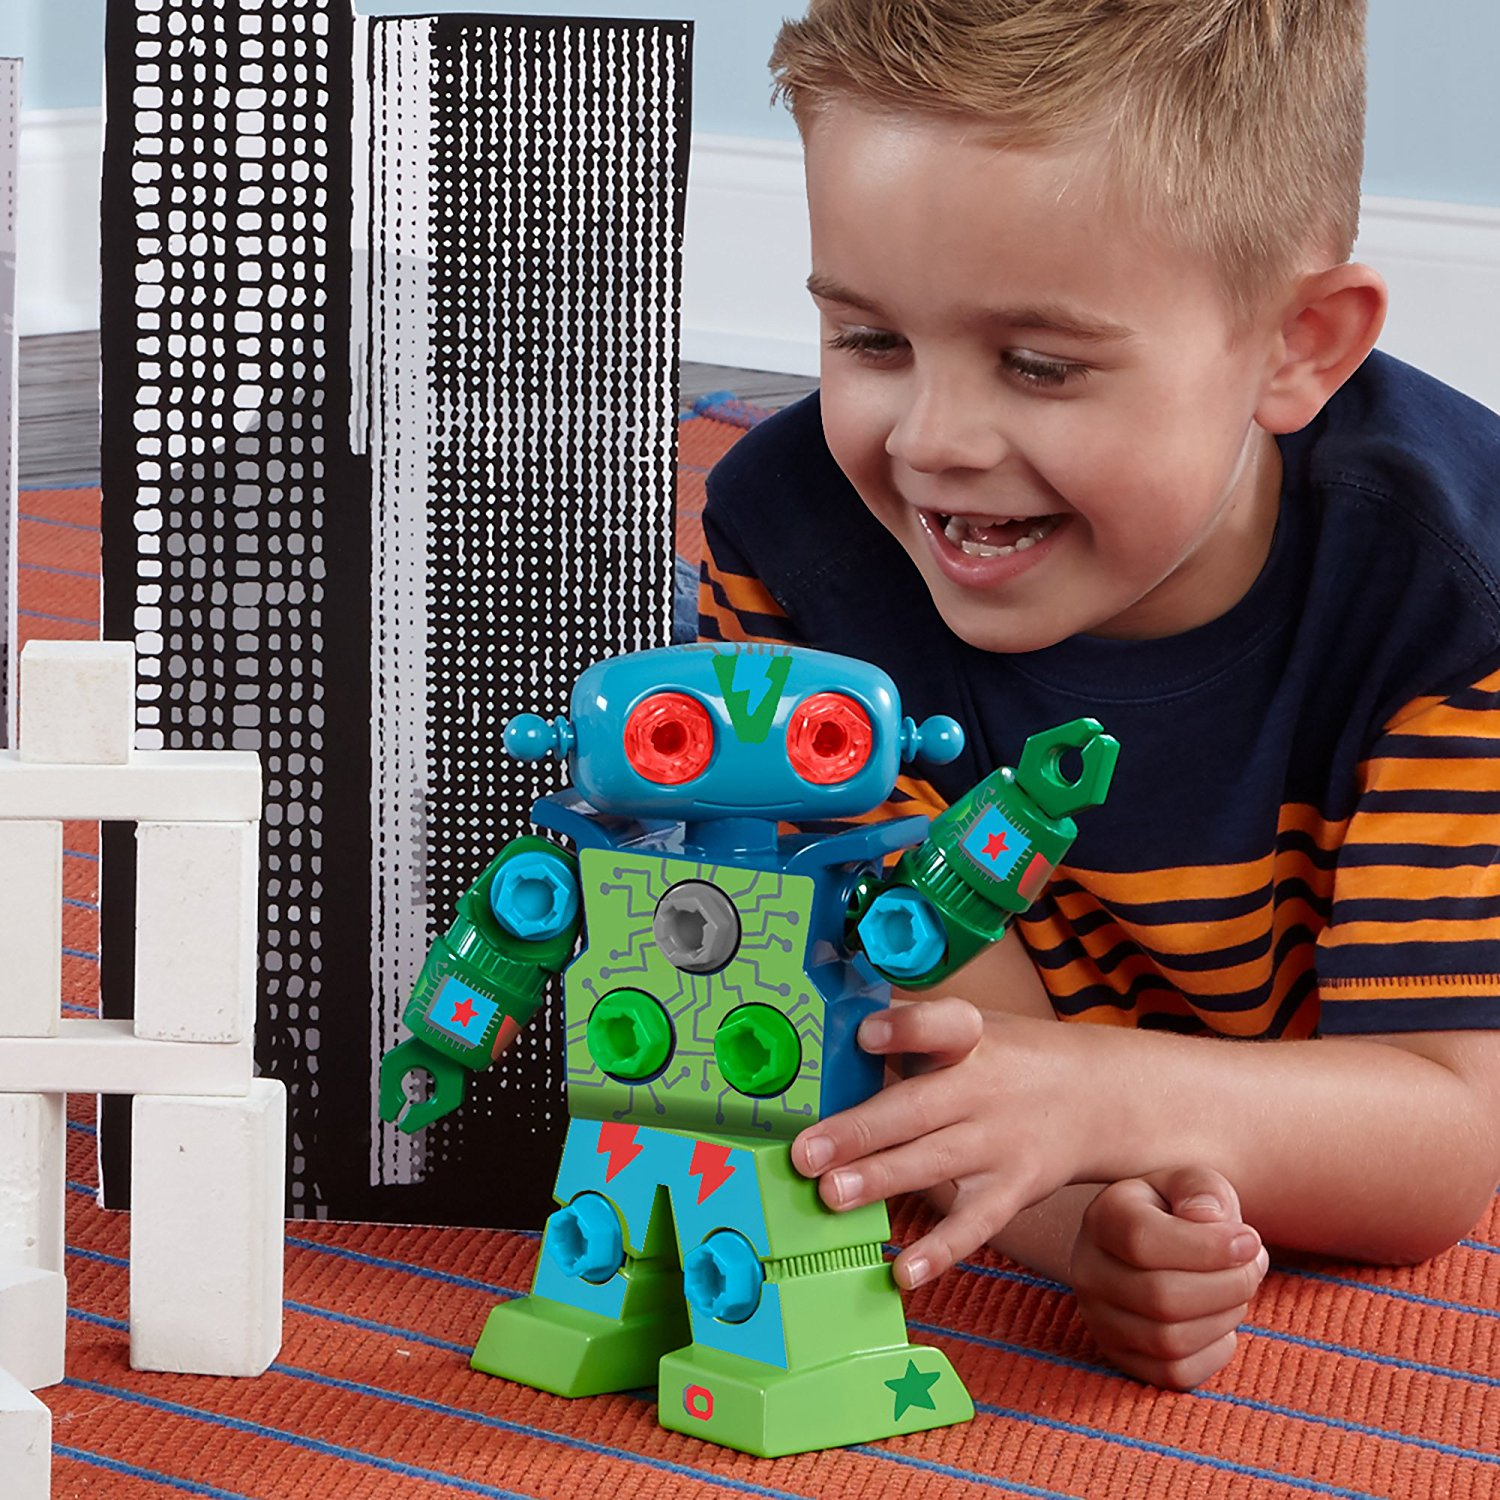 Educational Toys, Educational Toys for Summer Learning, Toys for Learning